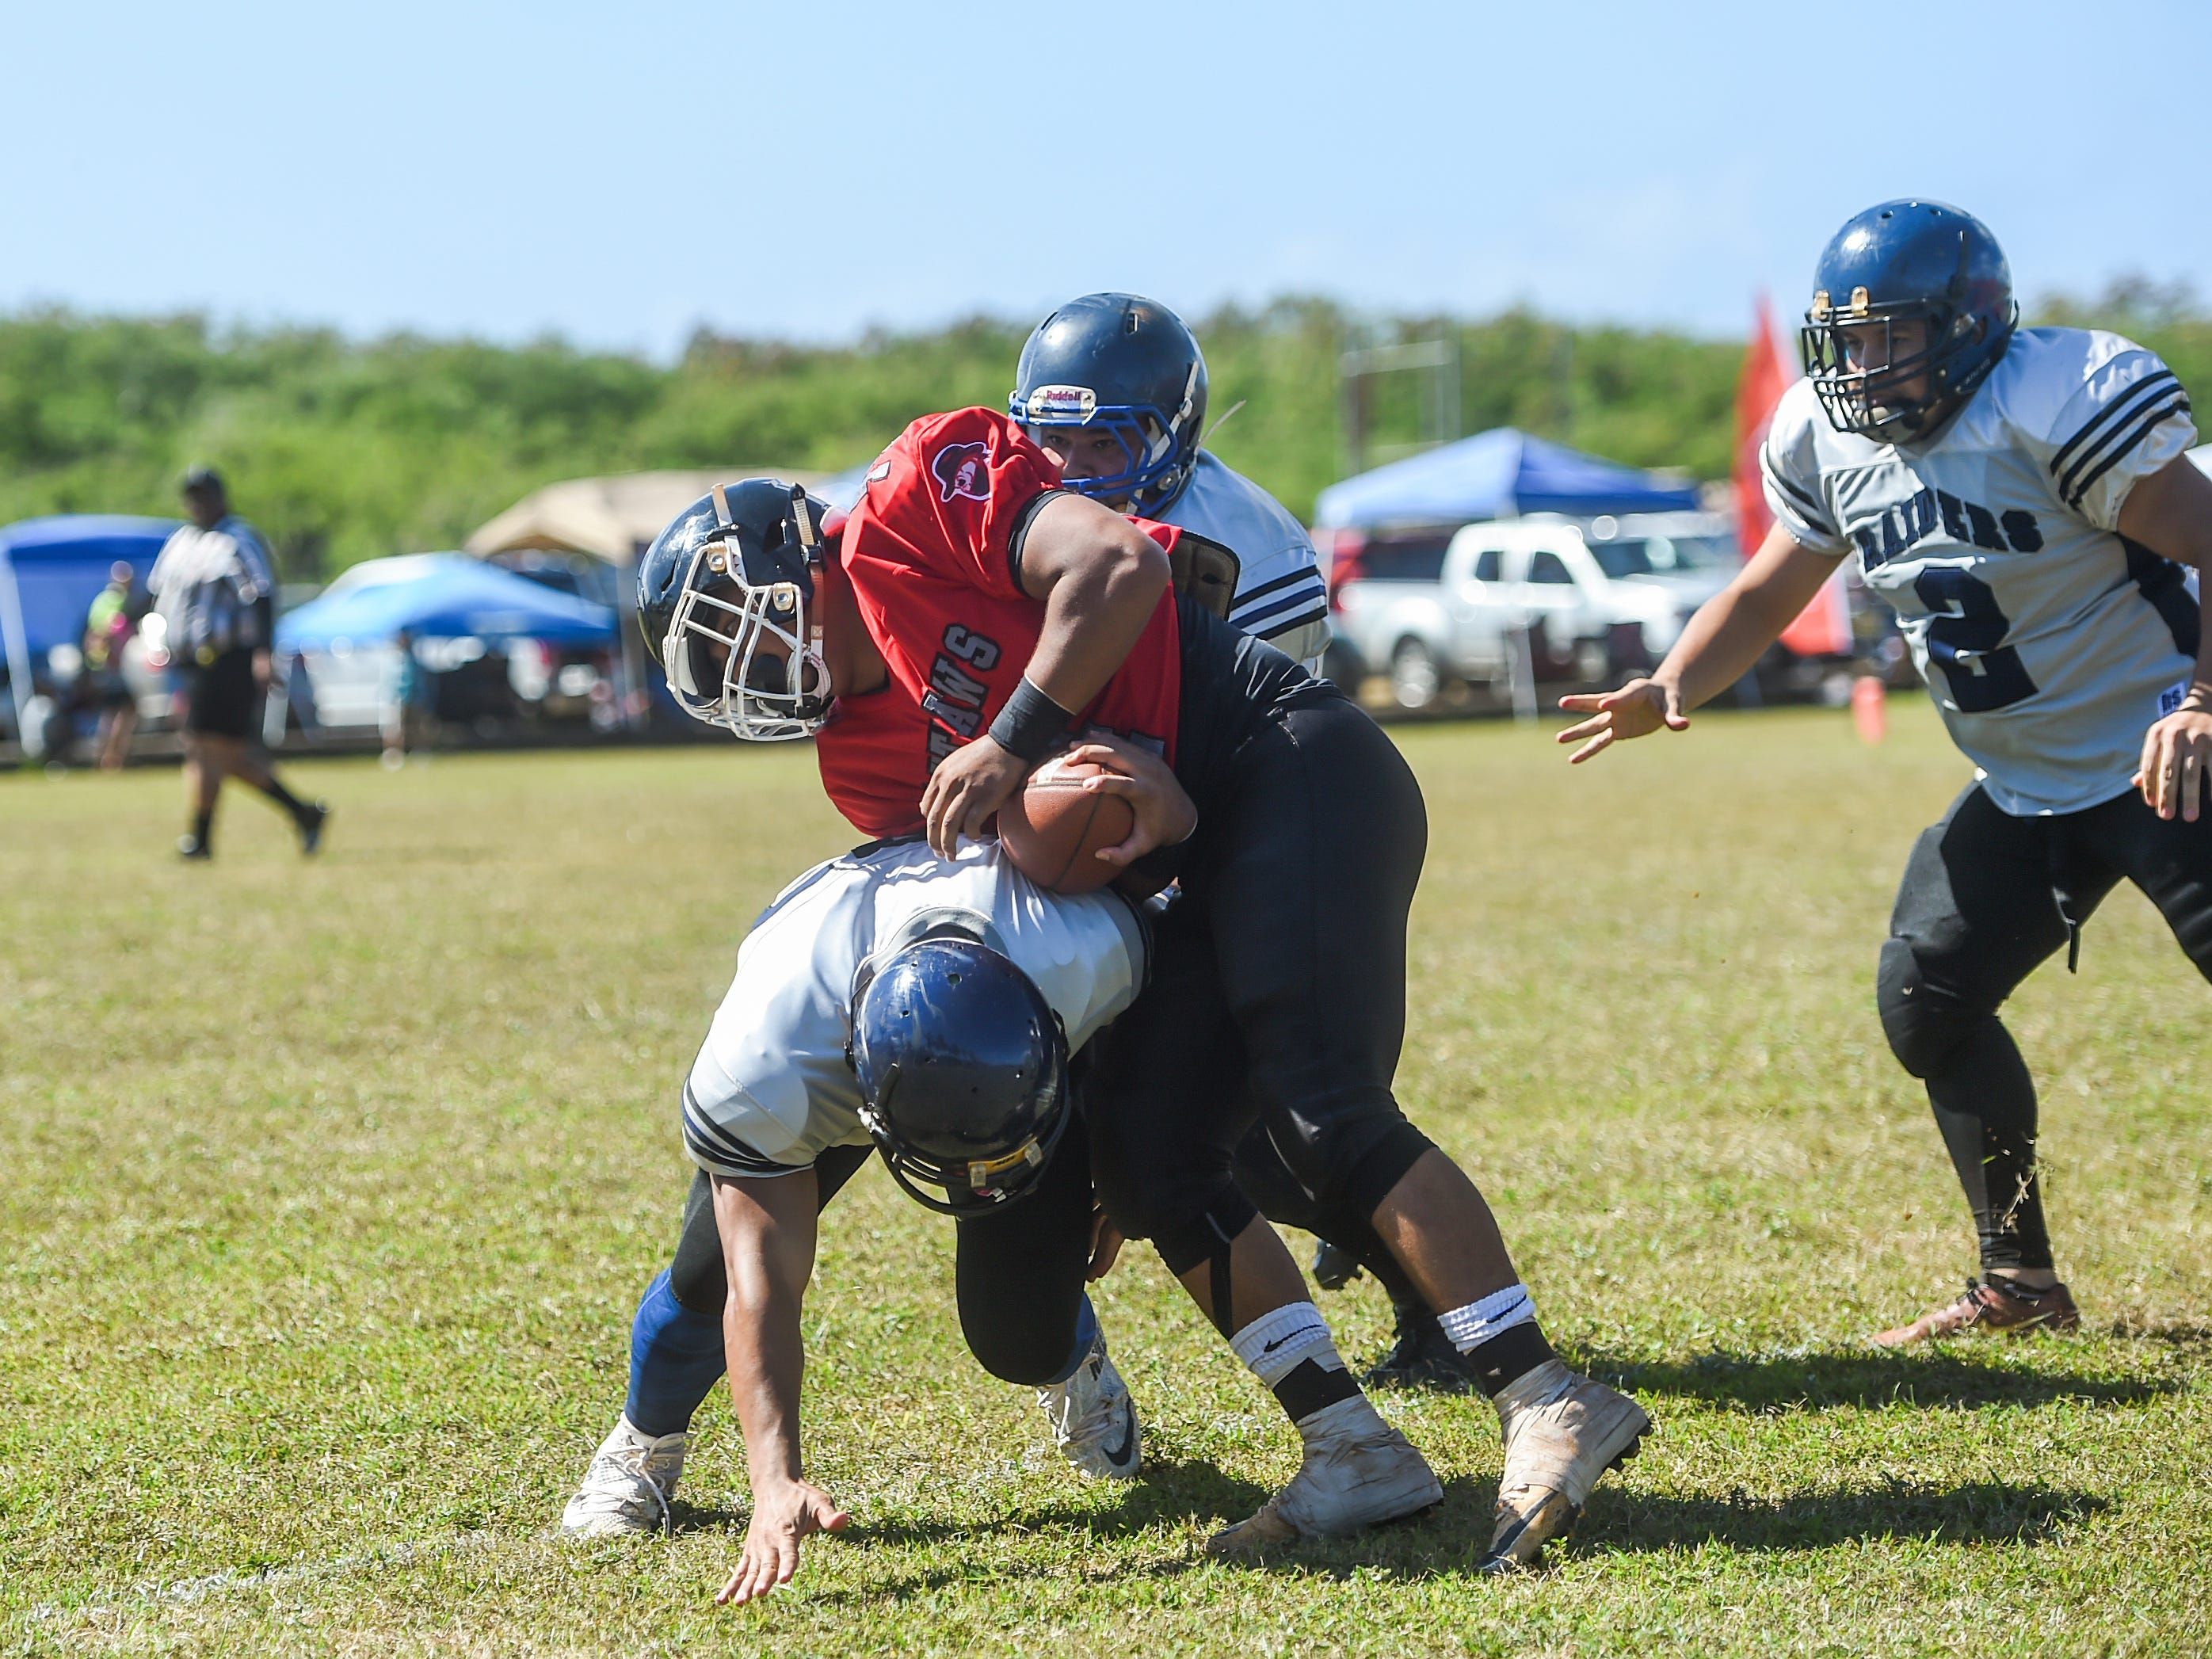 The Guam Raiders took on the Outlaws in Budweiser Guahan Varsity Football League action at Eagles Field in Mangilao, Feb. 16, 2019.